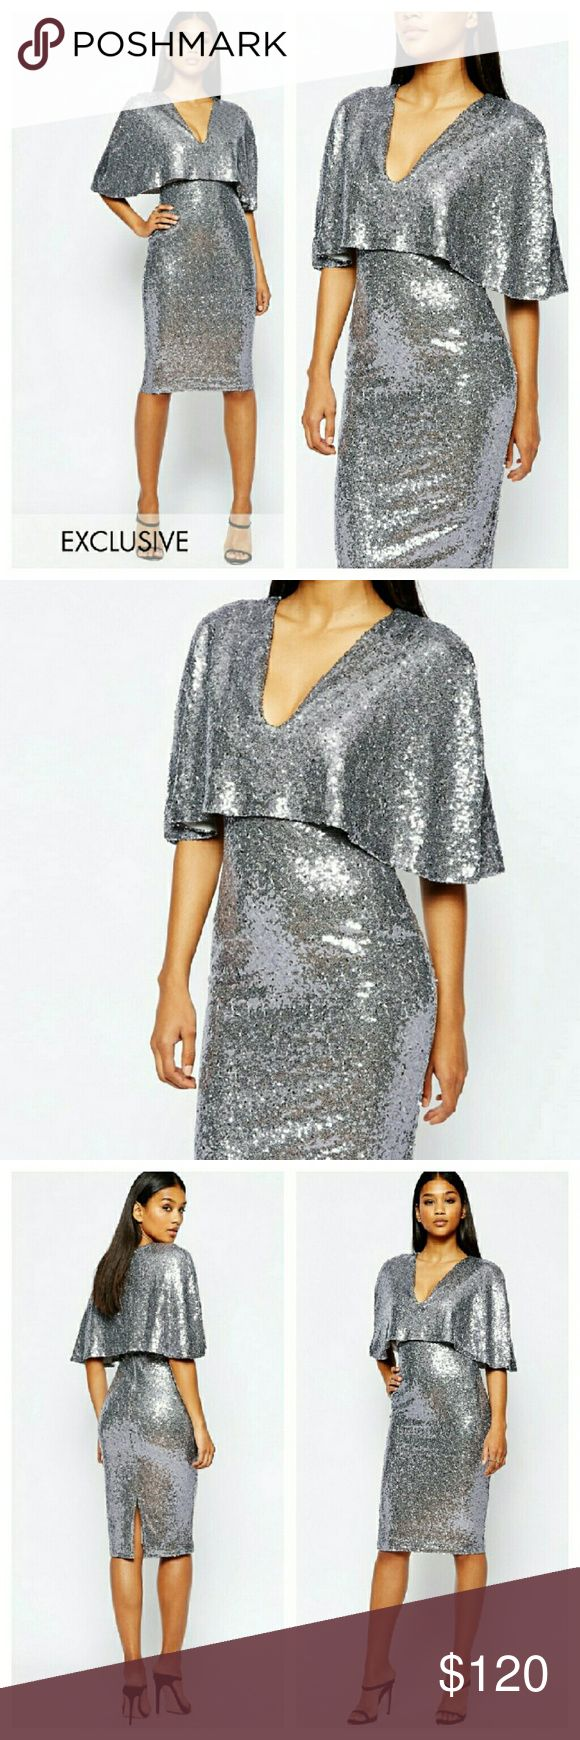 FINAL PRICE Asos Cape Sequin Midi Dress NWTs. UK size 8/US size 4. Purchased for myself off Asos but never wore. Brand new in packaging. Completely sold out. 100% poly with all over sequins. Zips in back. ASOS Dresses Midi